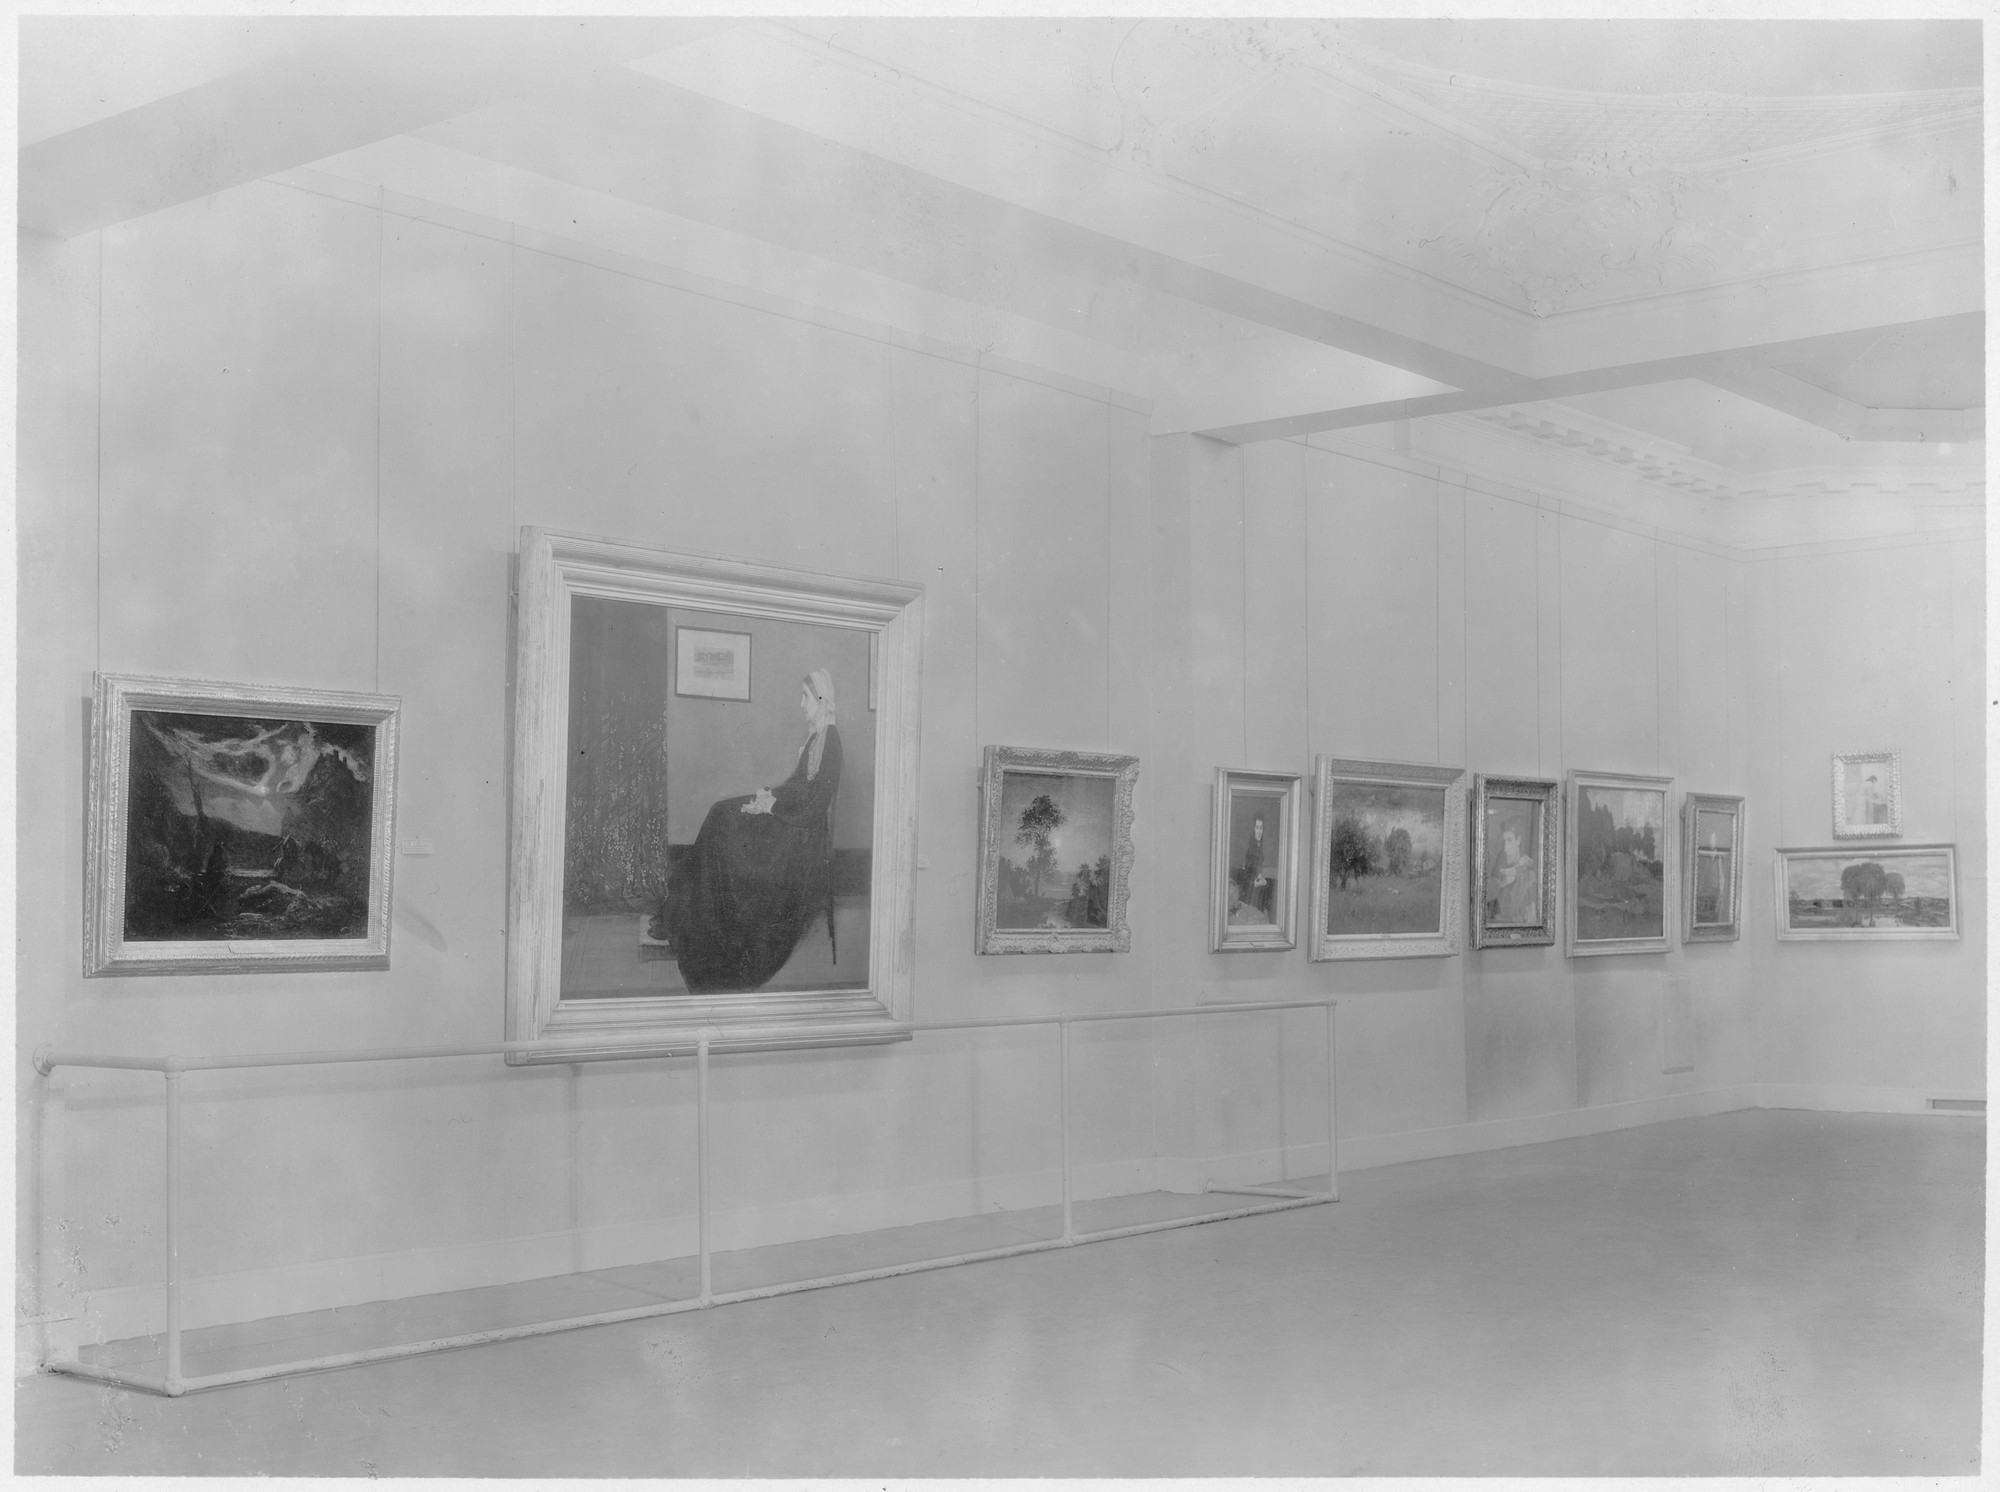 "Installation view of the exhibition, ""American Painting and Sculpture, 1862-1932"" October 31, 1932–February 11, 1933. Photographic Archive. The Museum of Modern Art Archives, New York. IN20.1. Photograph by Soichi Sunami."